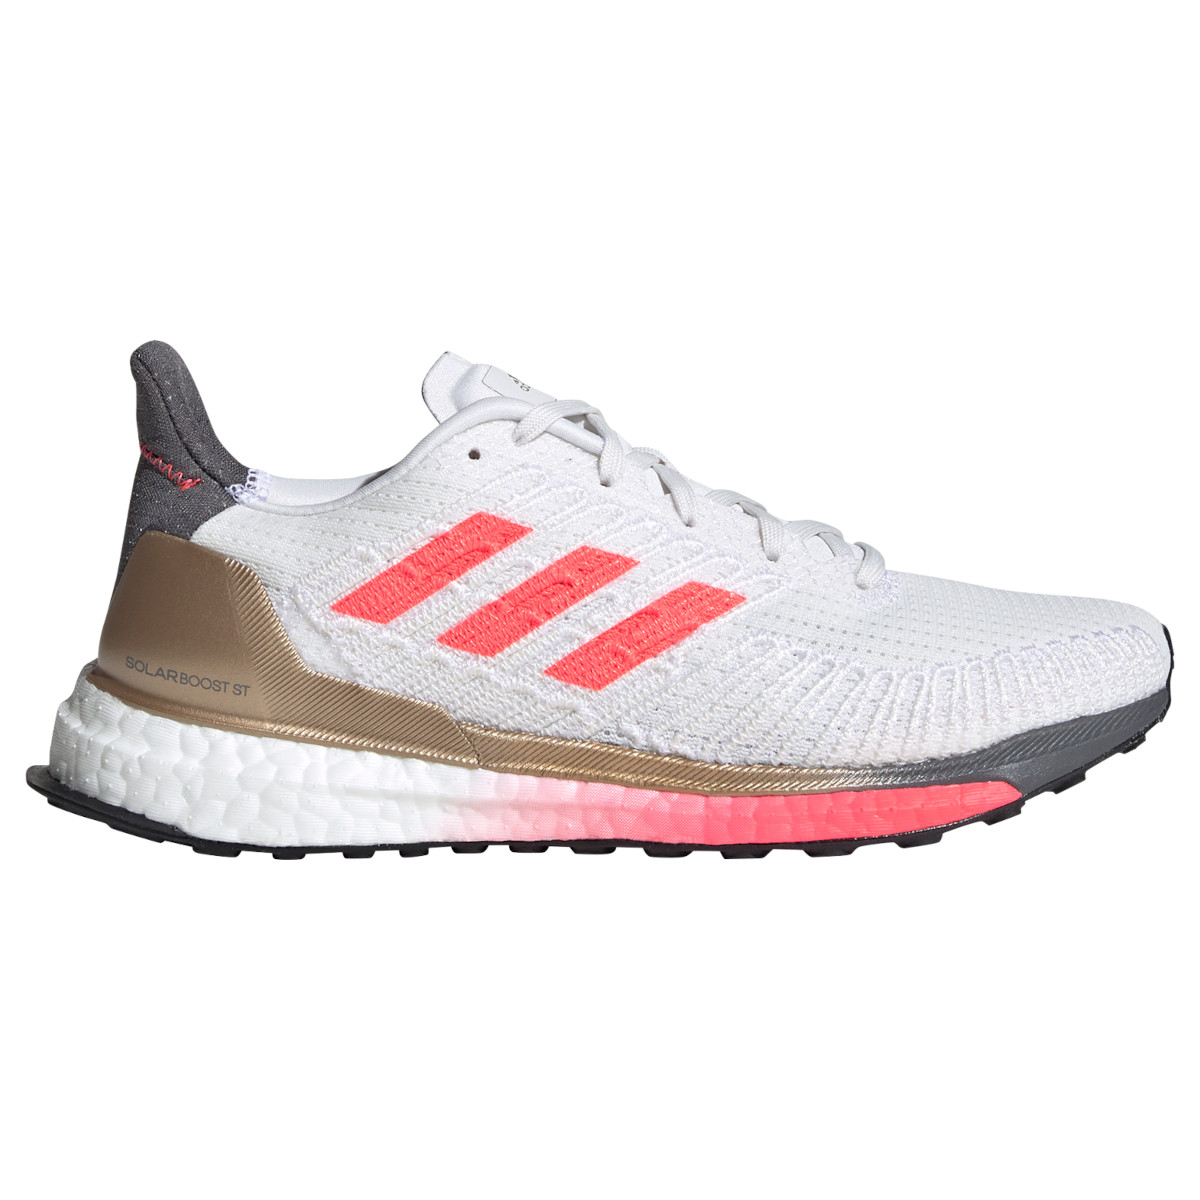 adidas Women's Solar Boost ST 19 Running Shoe - crystal white/signal pink/copper met. FW7805